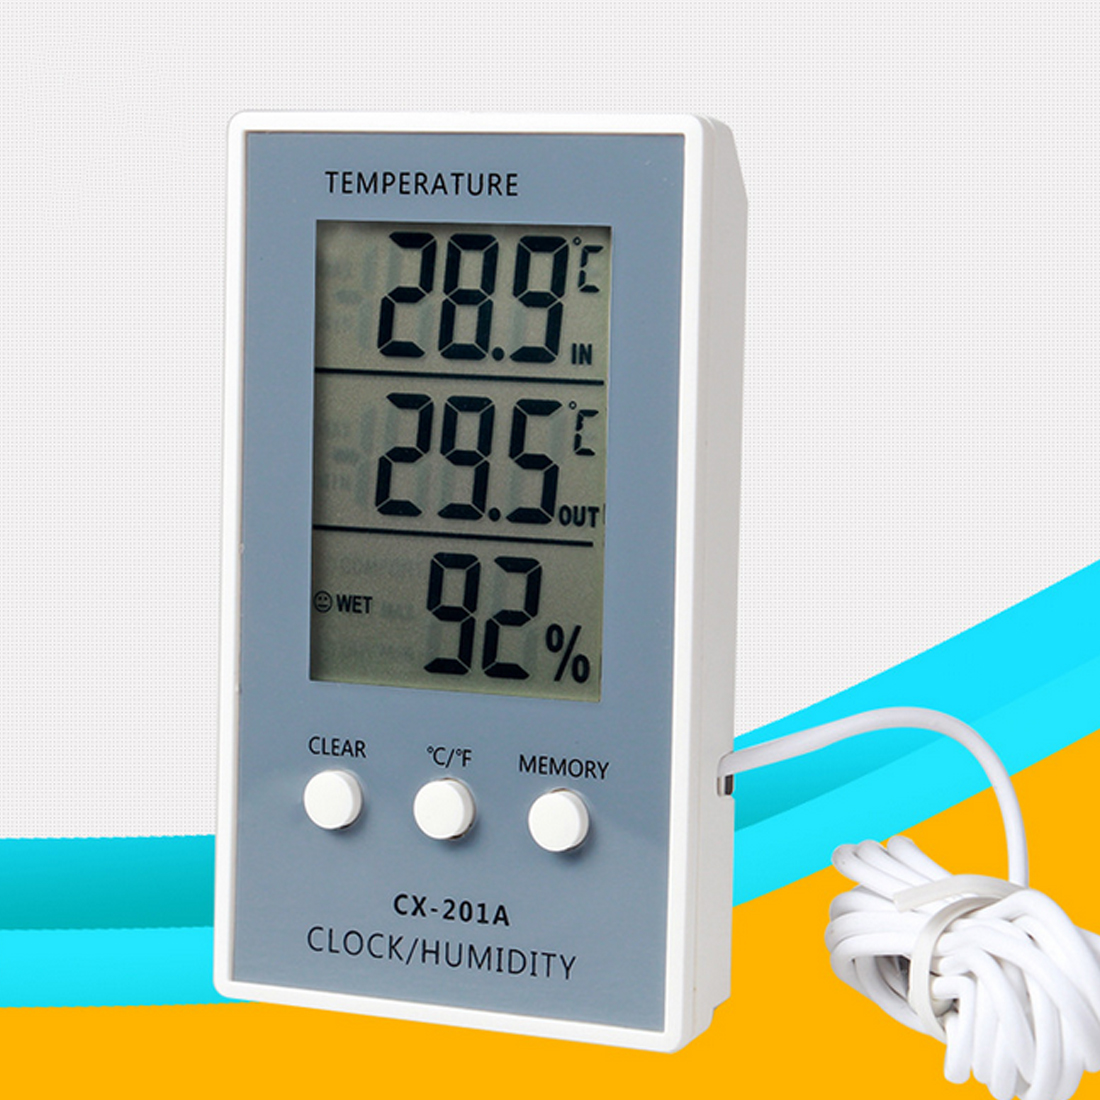 цена на Digital Thermometer Hygrometer Indoor Outdoor Temperature Humidity Meter C/F LCD Display Sensor Probe Weather Station